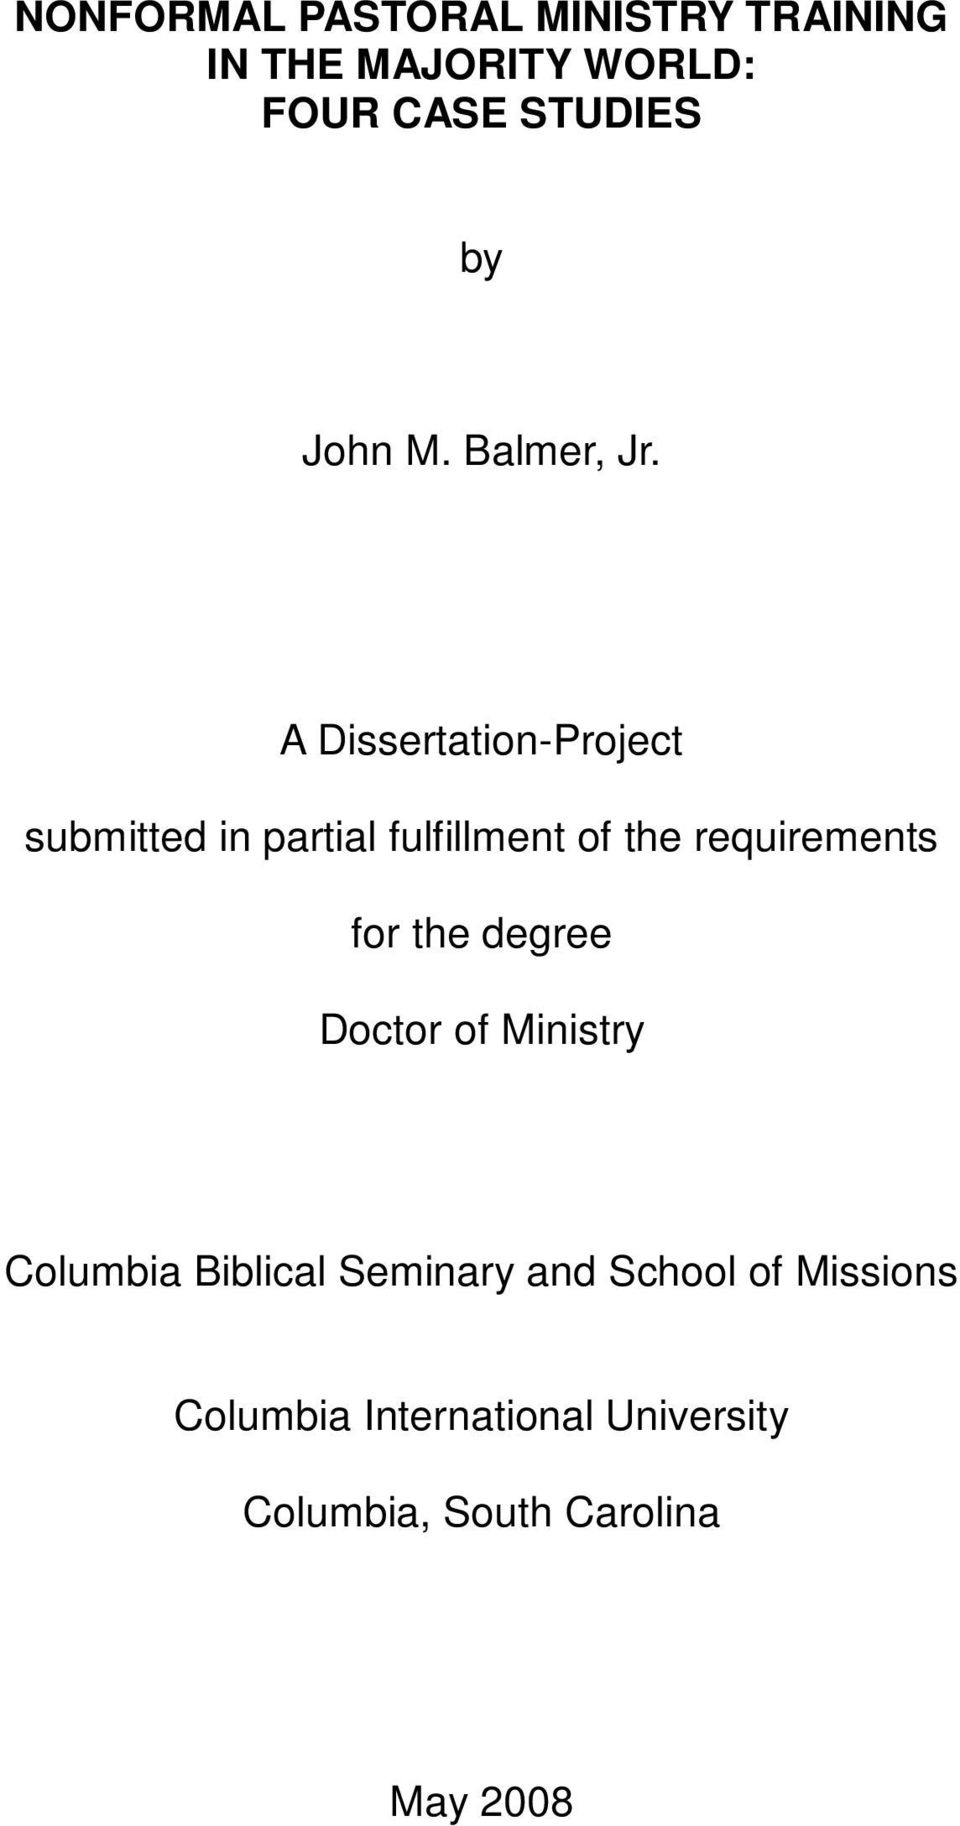 A Dissertation-Project submitted in partial fulfillment of the requirements for